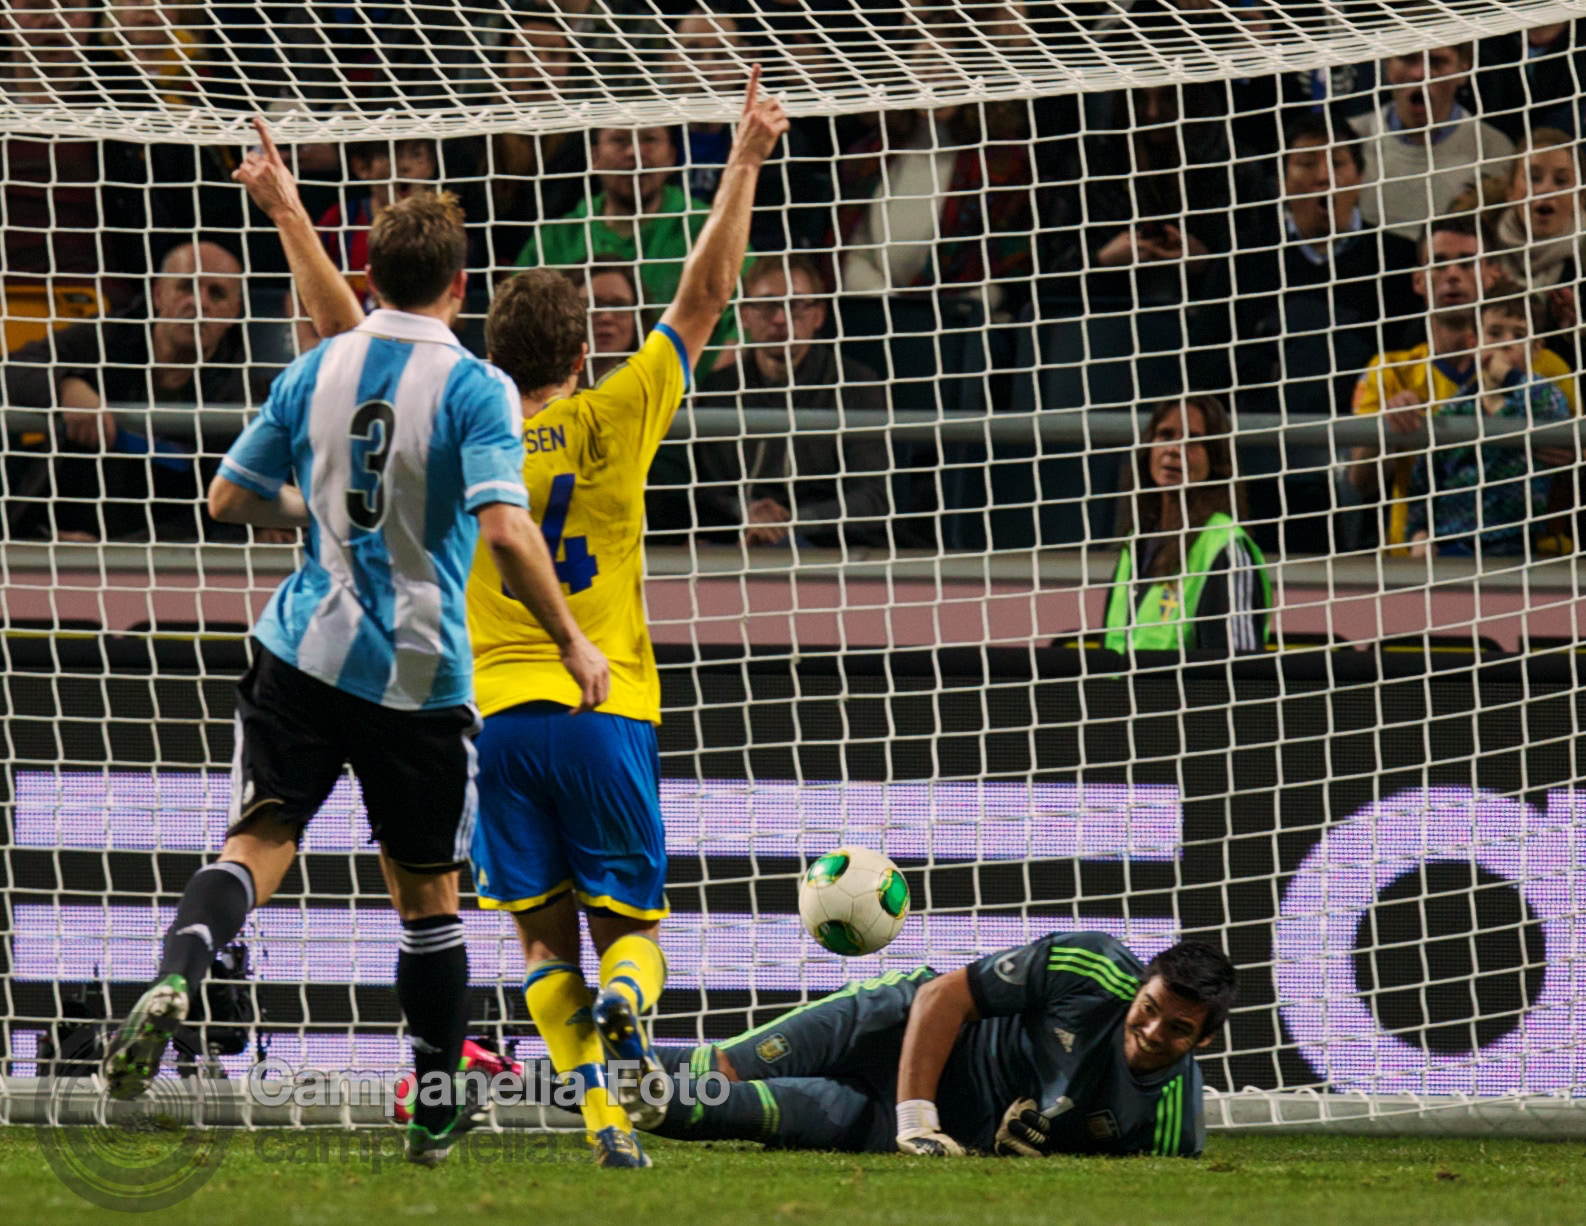 Sweden takes on Argentina - 35 of 35